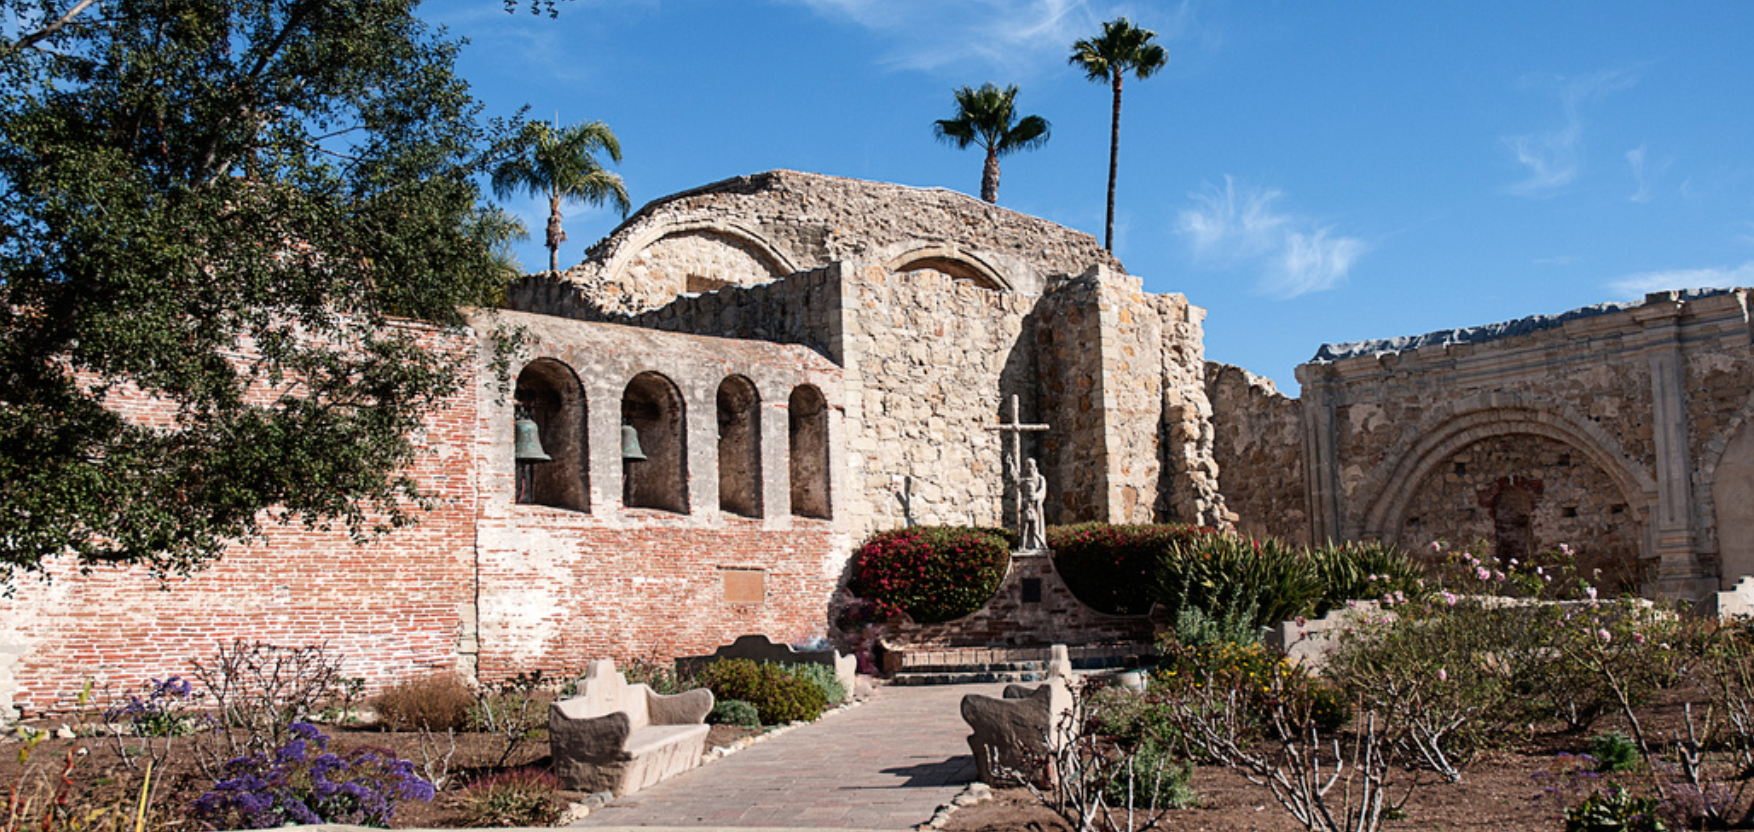 MISSION SAN JUAN CAPISTRANO HAS REOPENED